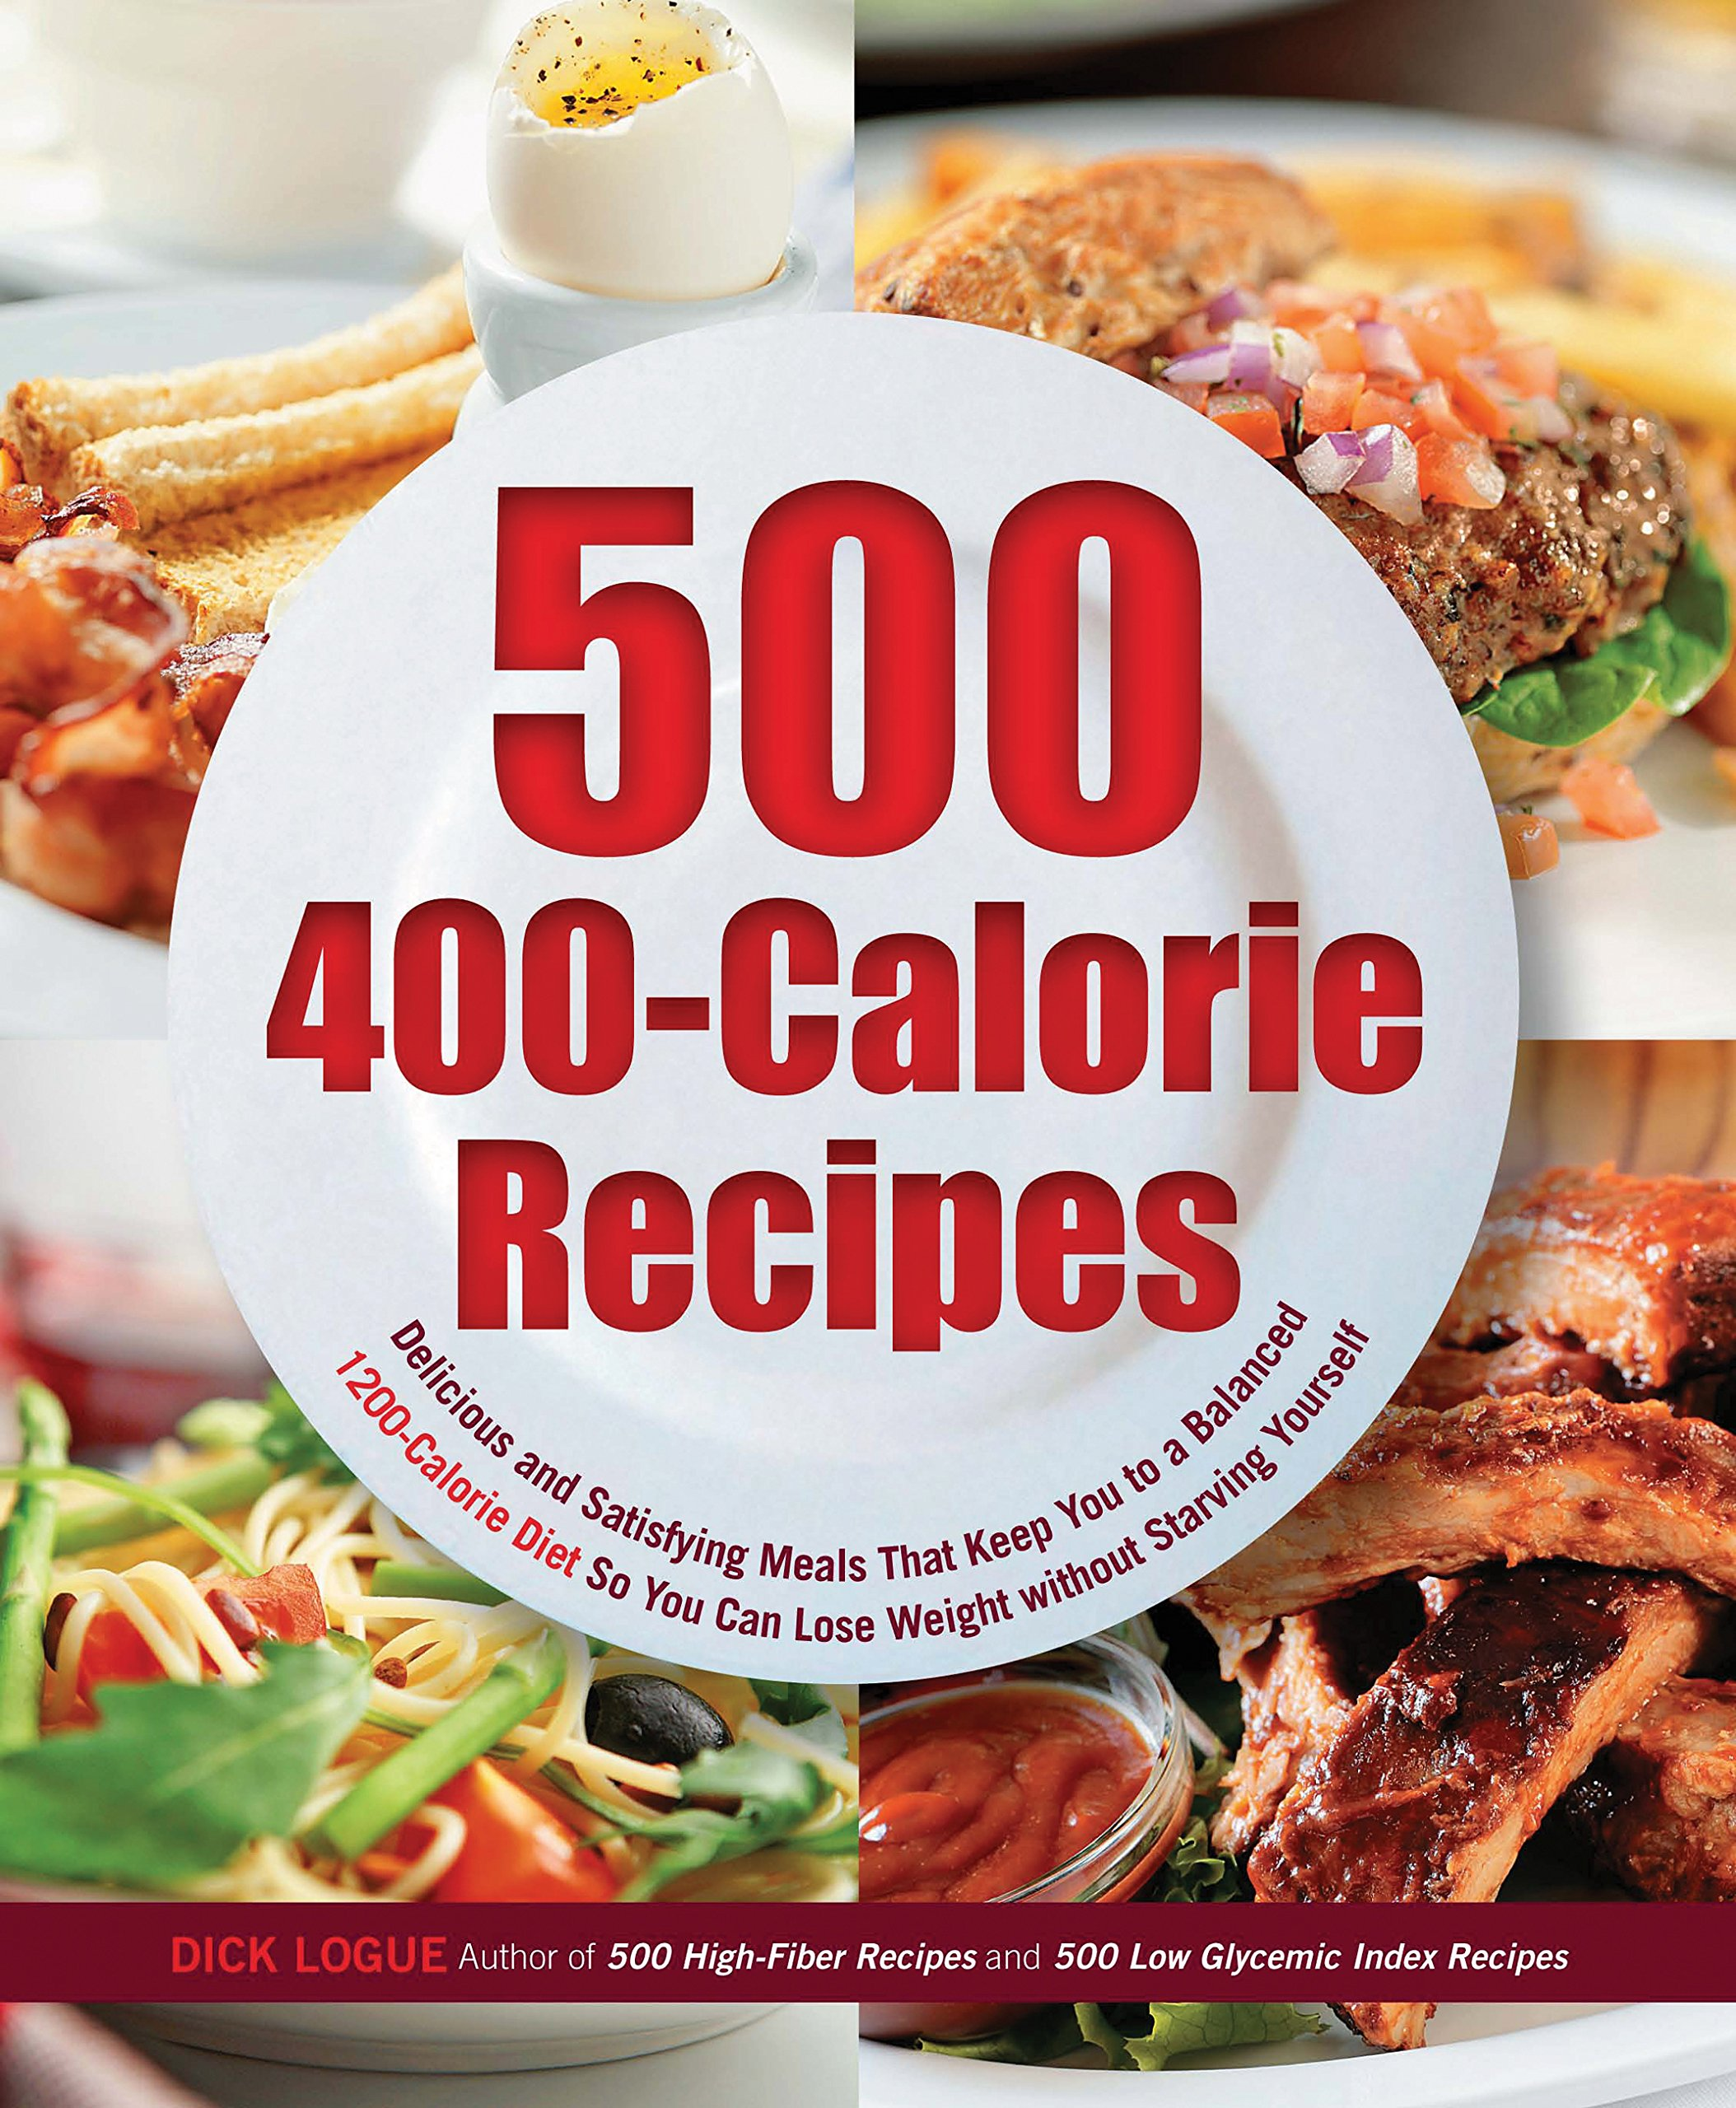 500 400-Calorie Recipes: Delicious and Satisfying Meals That Keep You to a Balanced 1200-Calorie Diet So You Can Lose Weight without Starving Yourself pdf epub